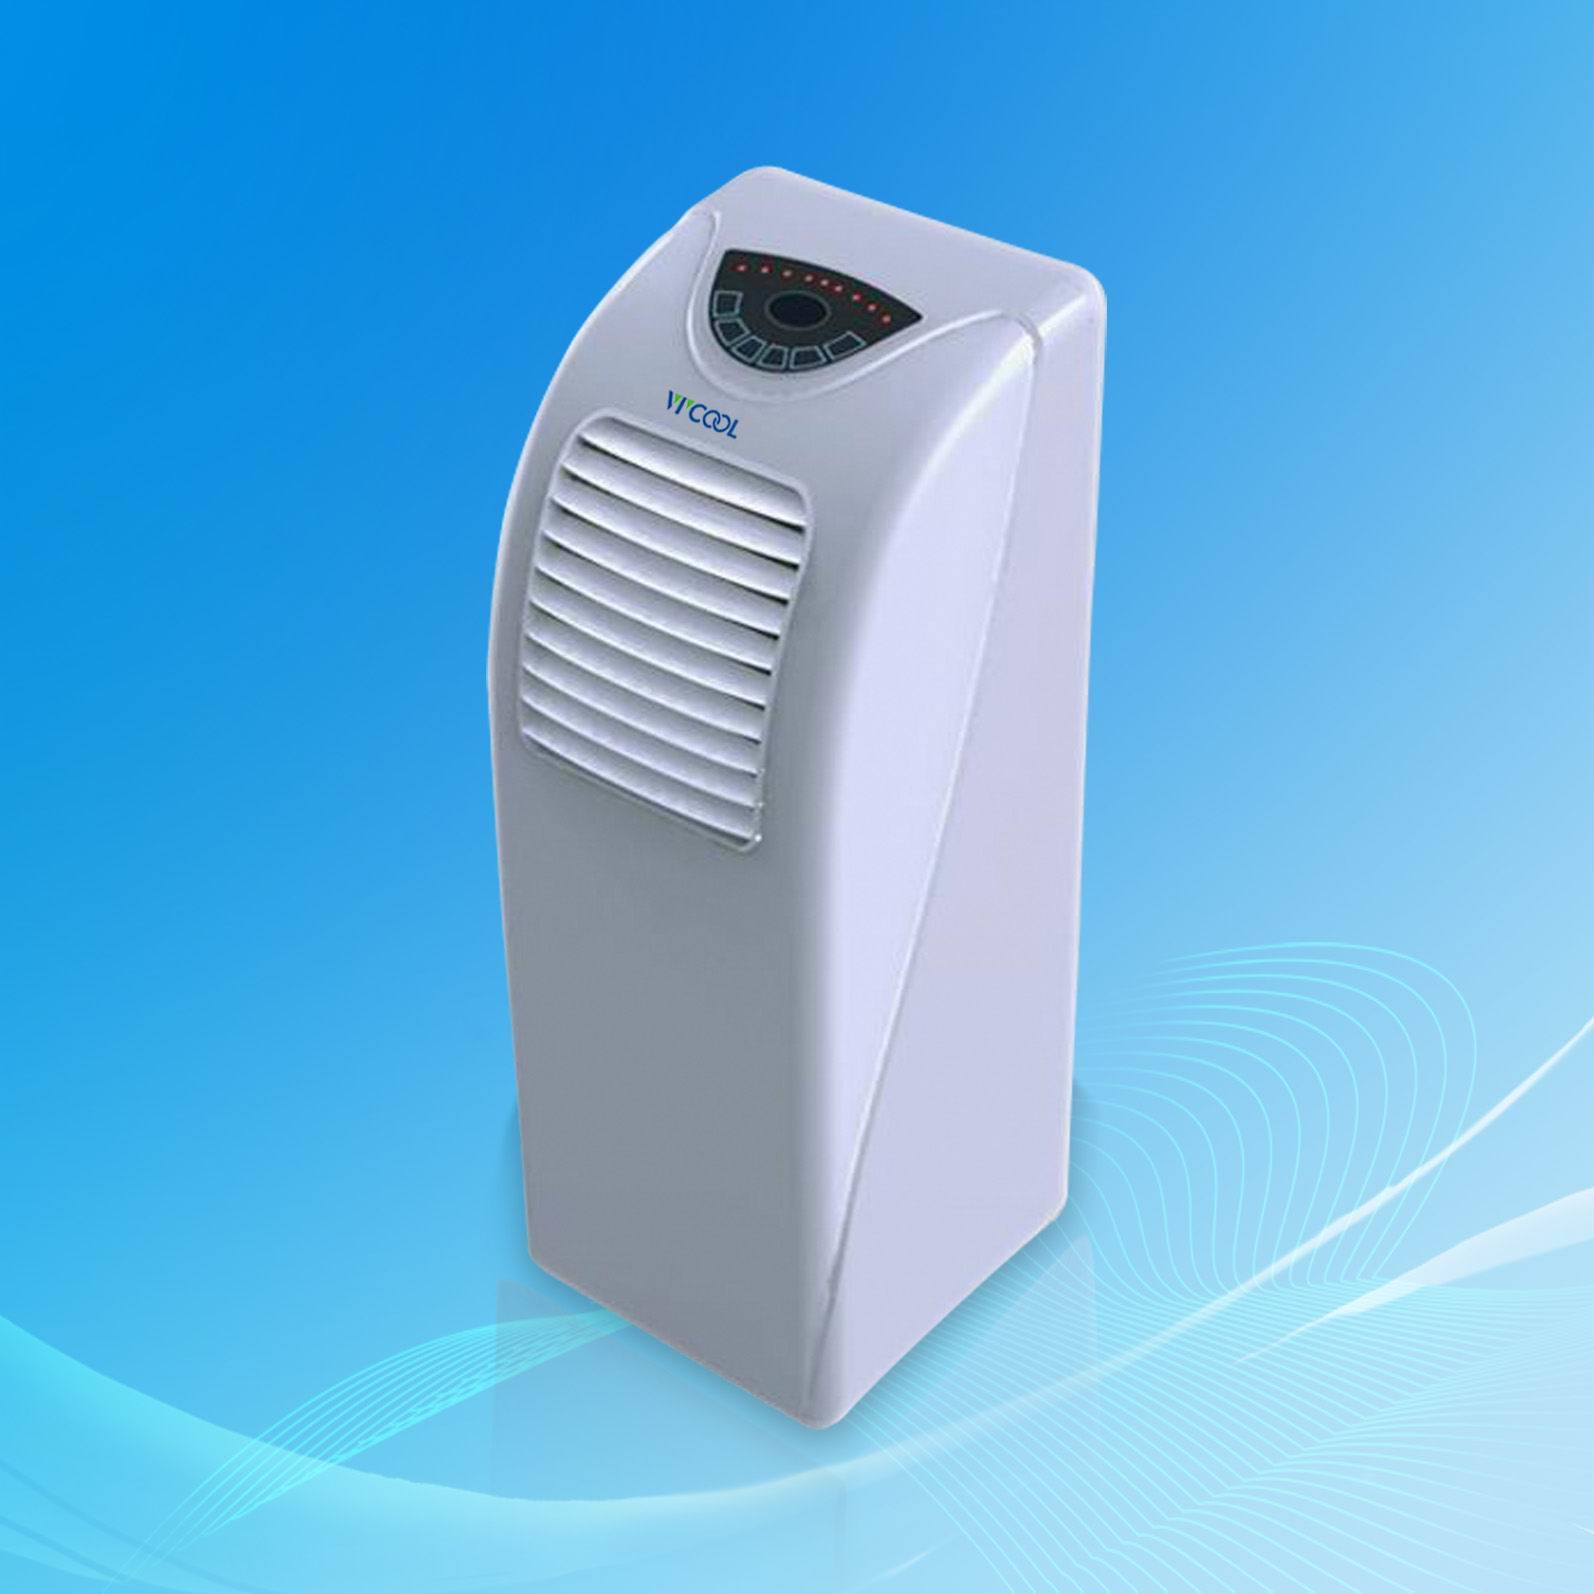 Air conditioner portable portable air conditioner energy efficient portable diy air - How to choose an energy efficient air conditioner ...